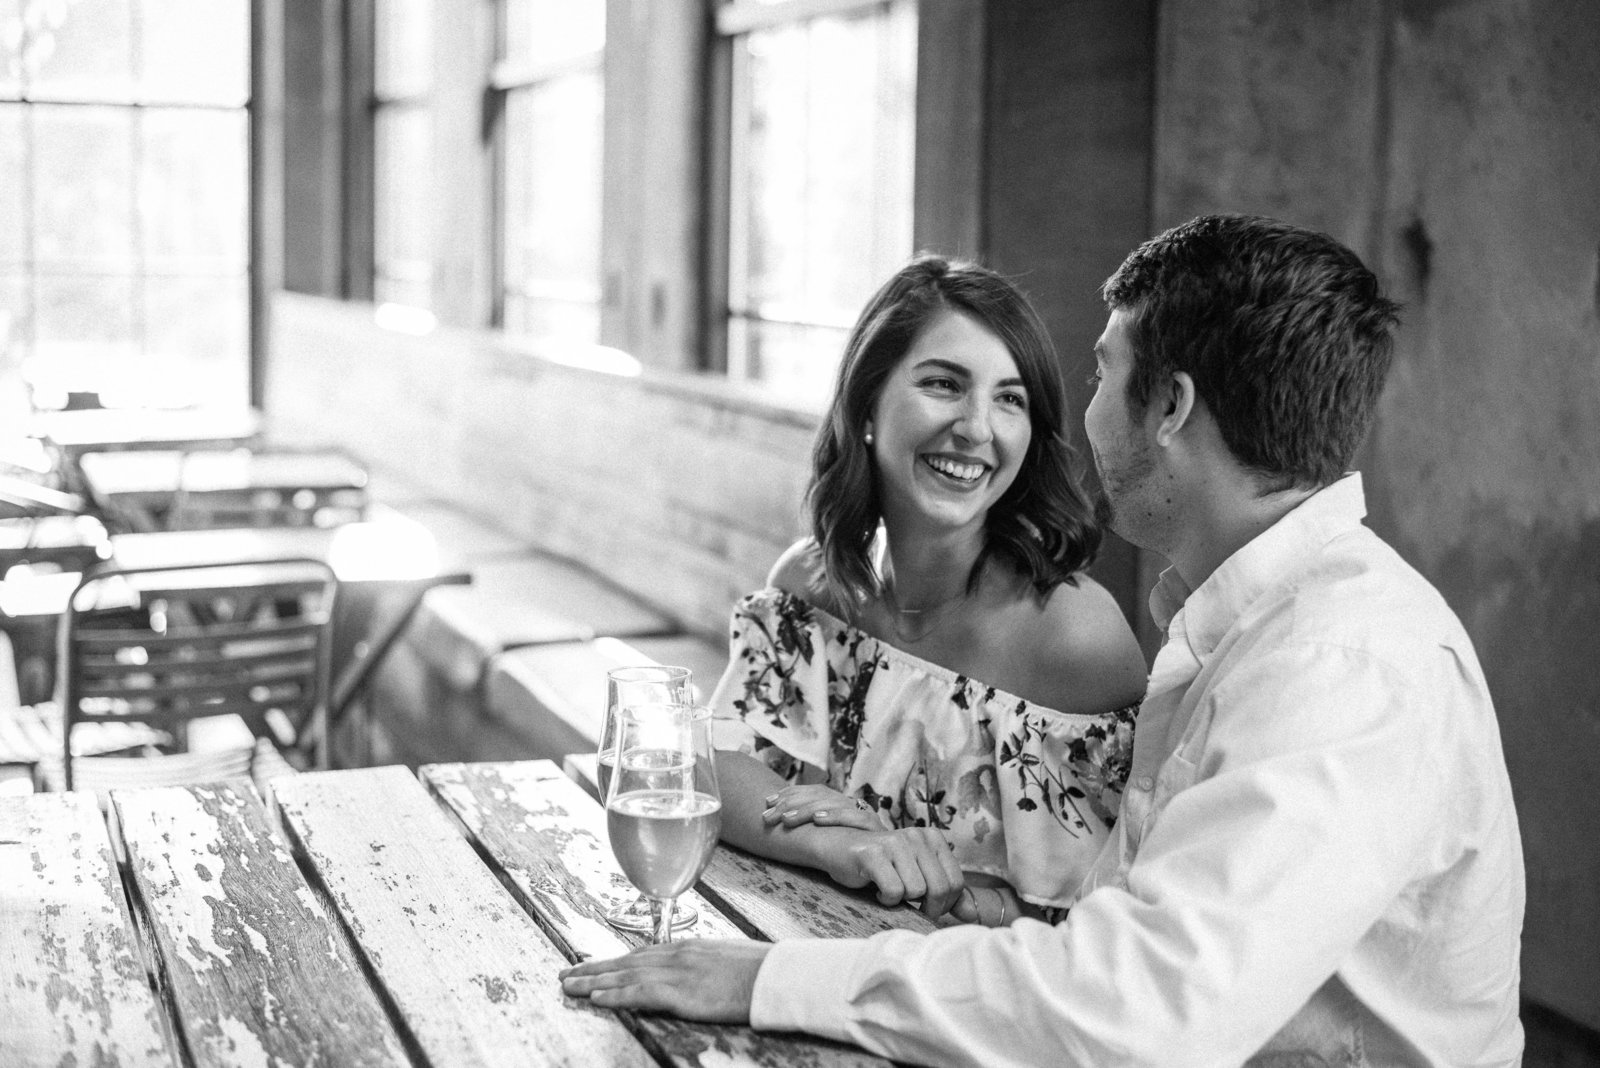 Katy-and-Zach-Libby-Hill-Richmond-Engagemnt-Photos-Melissa-Desjardins-Photography-4